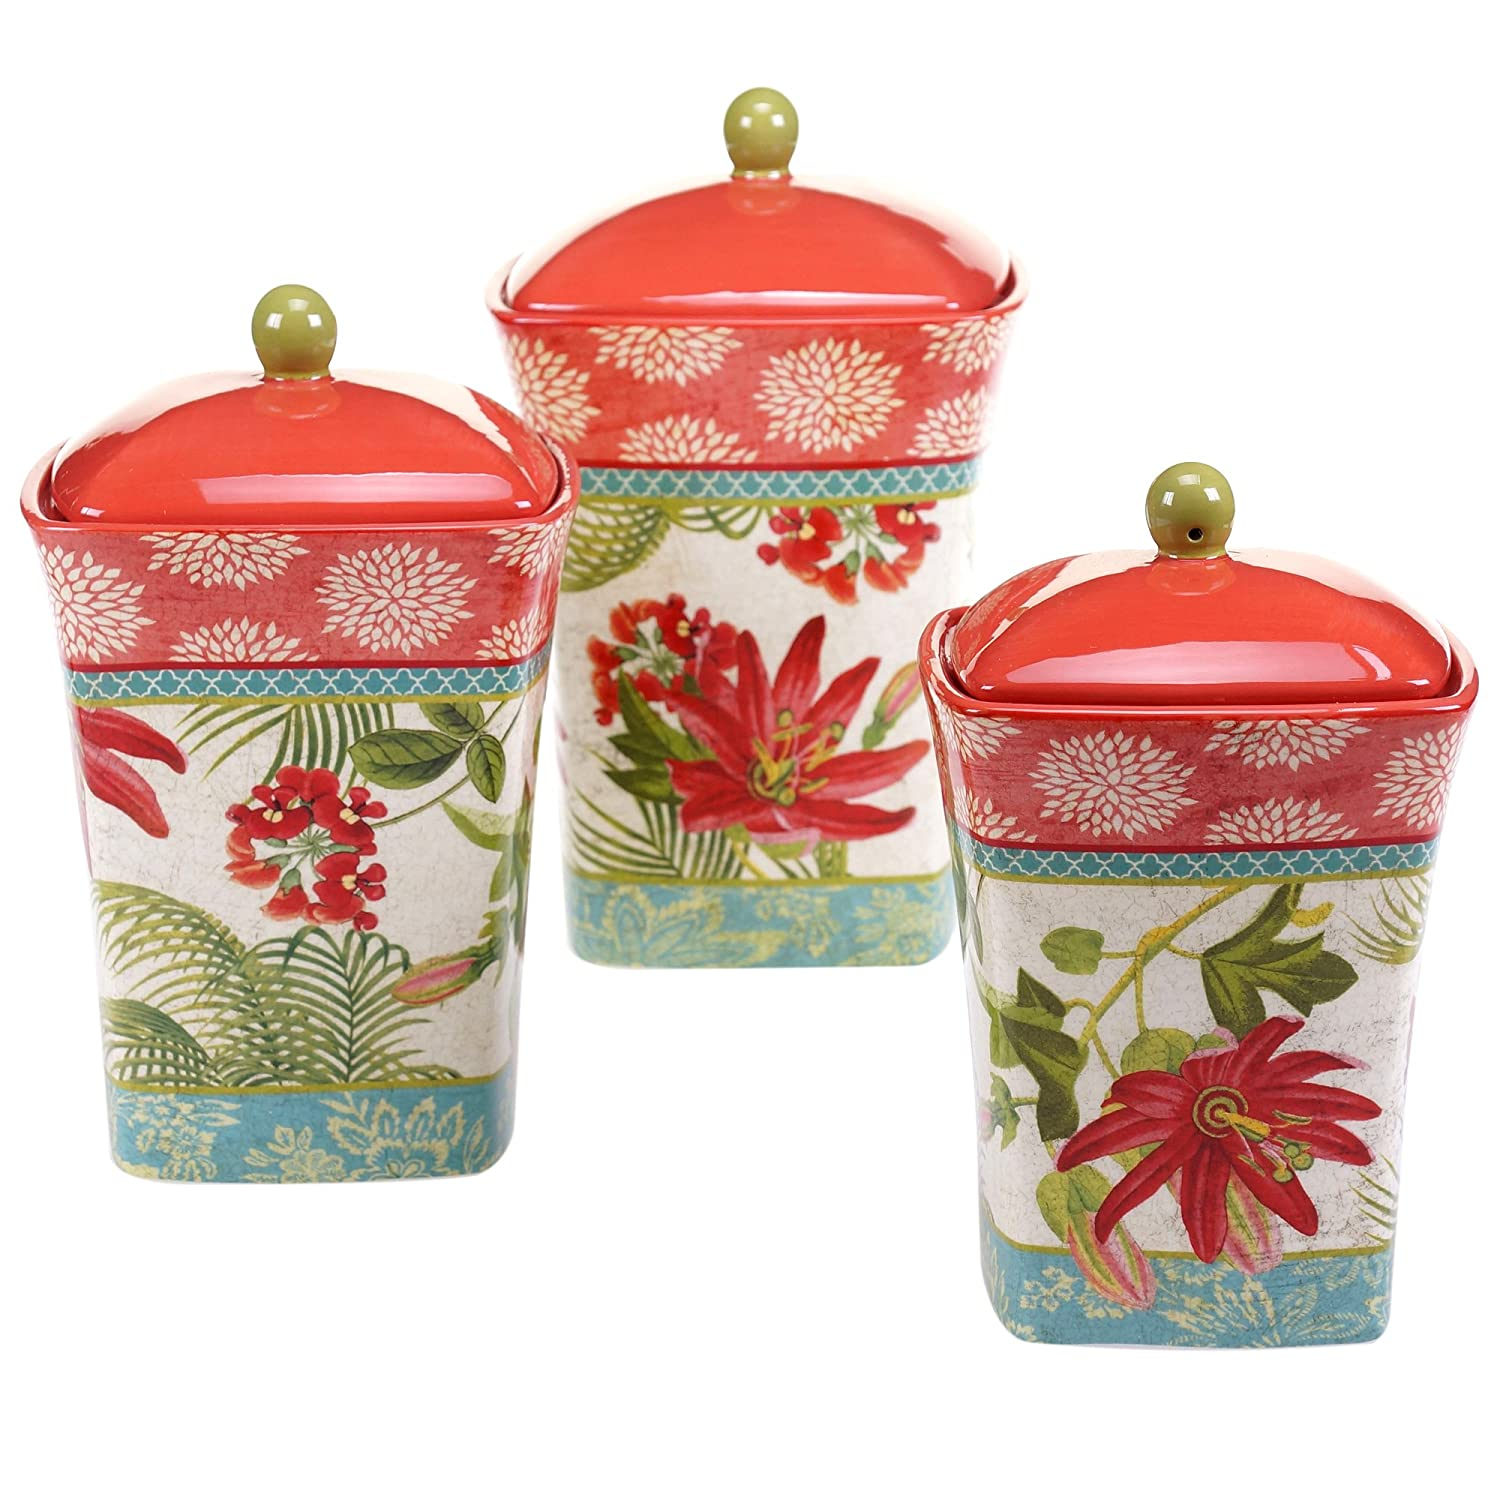 Certified International 13928 3 Piece Umbria Canister Set, Multicolor